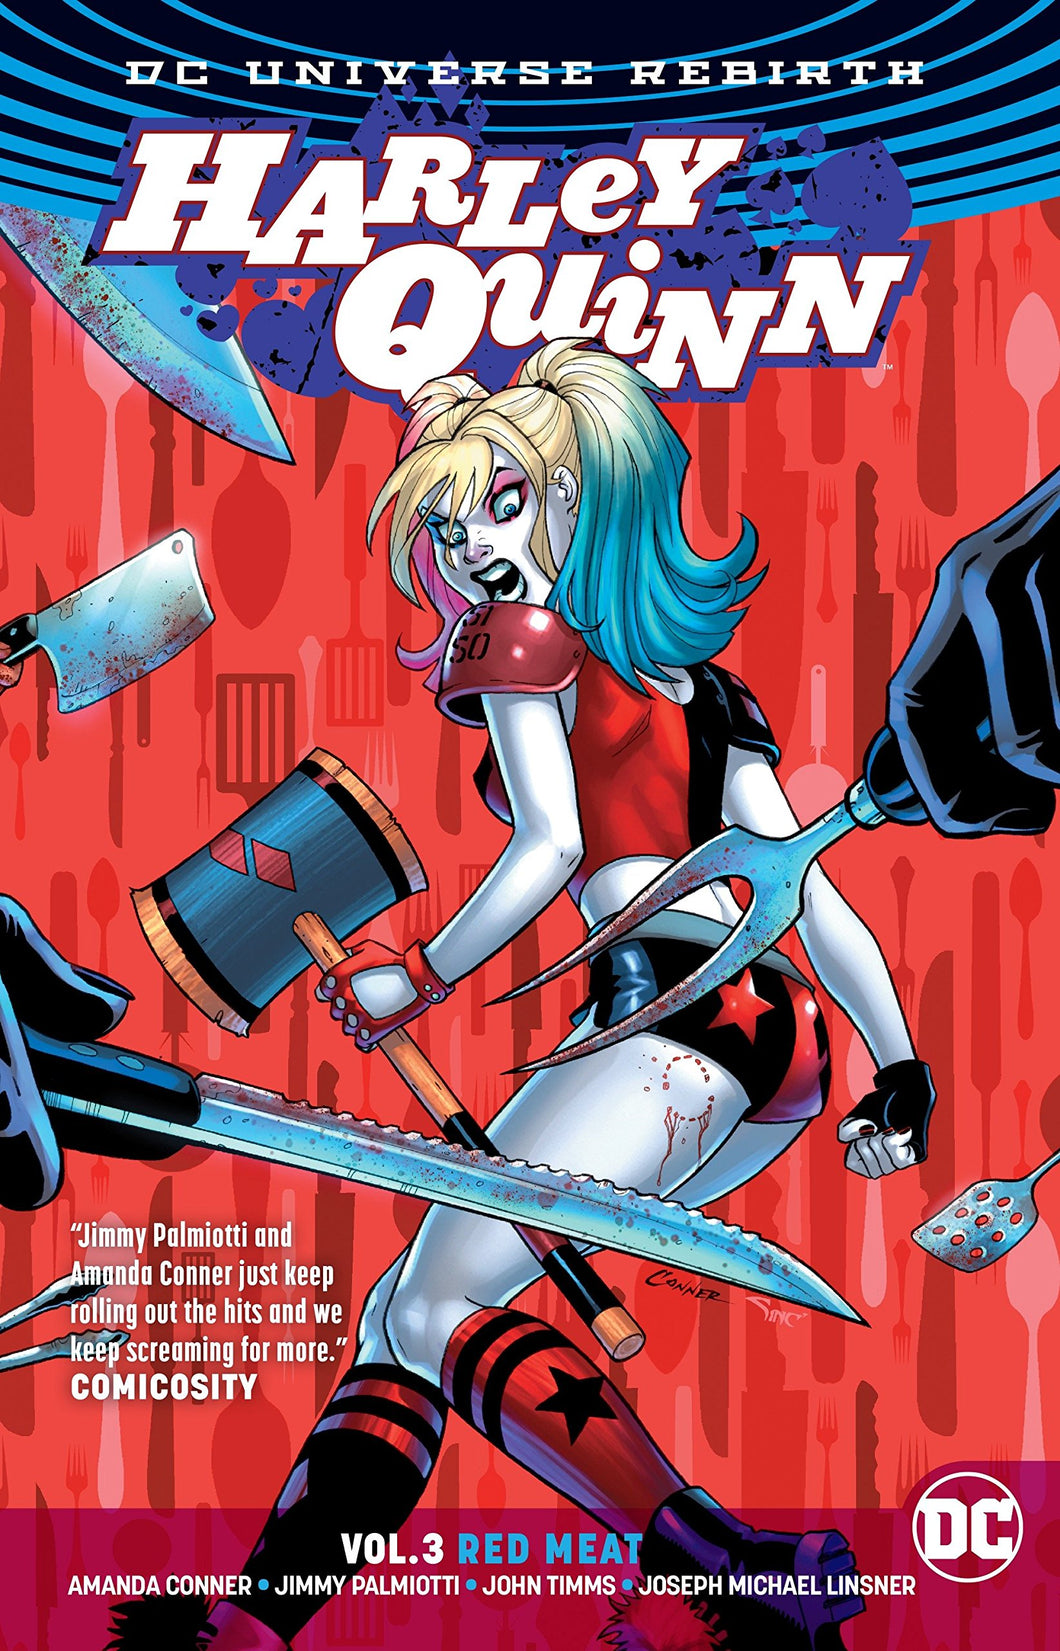 Harley Quinn Rebirth Vol. 3 : Red Meat